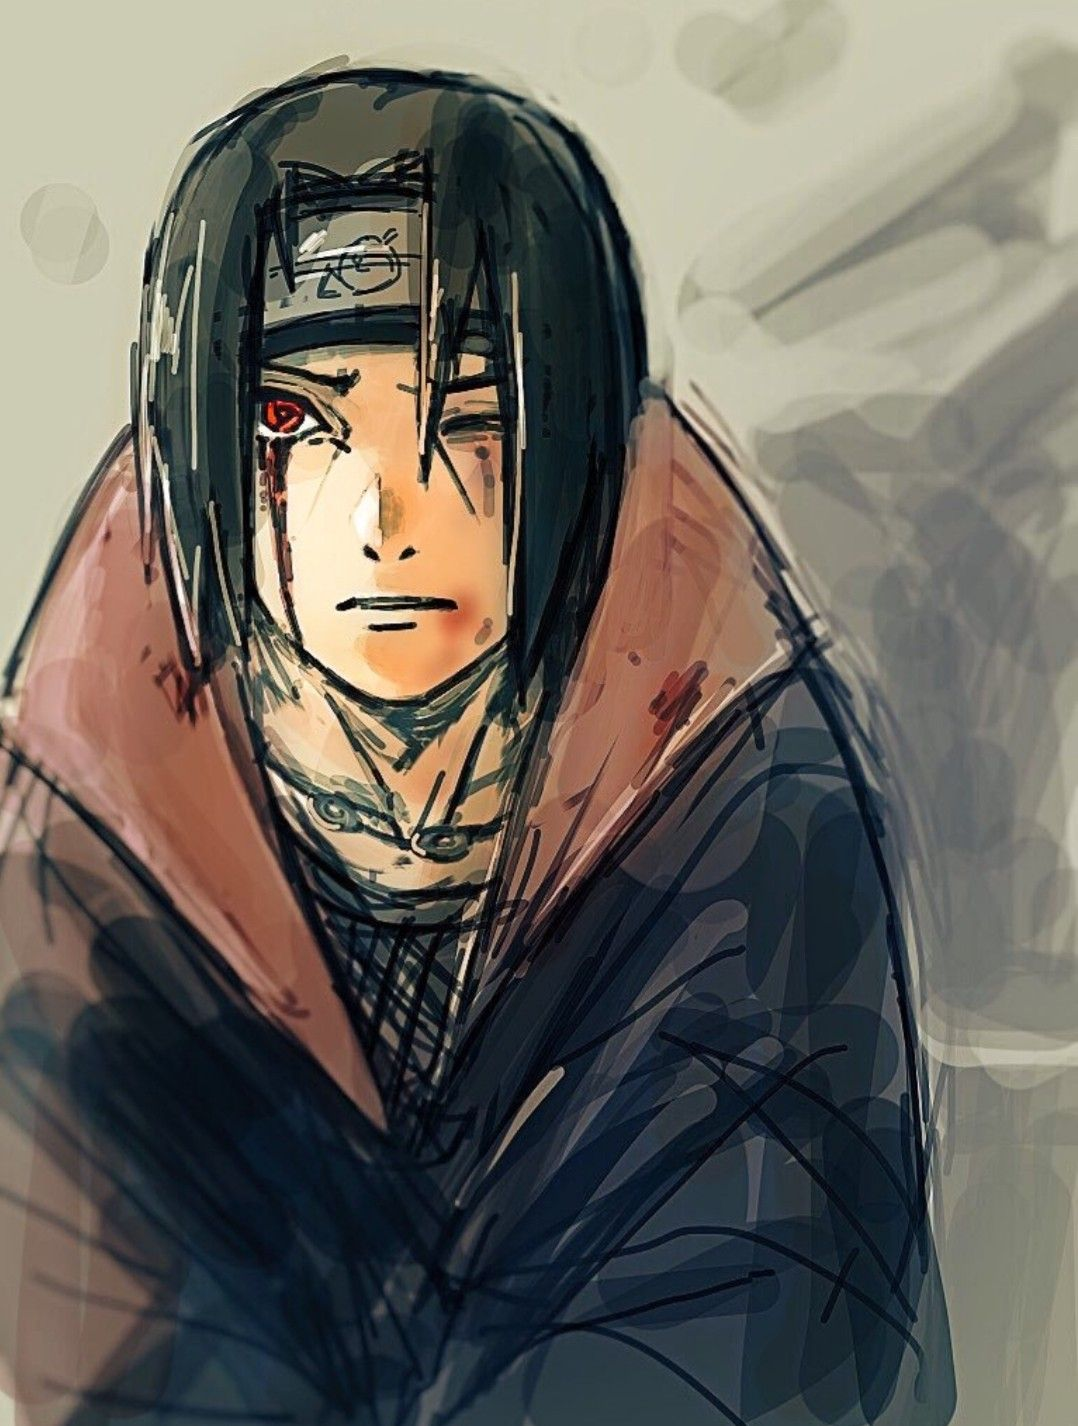 𝑨𝒎𝒂𝒕𝒆𝒓𝒂𝒔𝒐 𝑴𝒂𝒏𝒈𝒆𝒌𝒚𝒐𝒖 𝑺𝒉𝒂𝒓𝒊𝒏𝒈𝒂𝒏 in 2020 Naruto art, Itachi